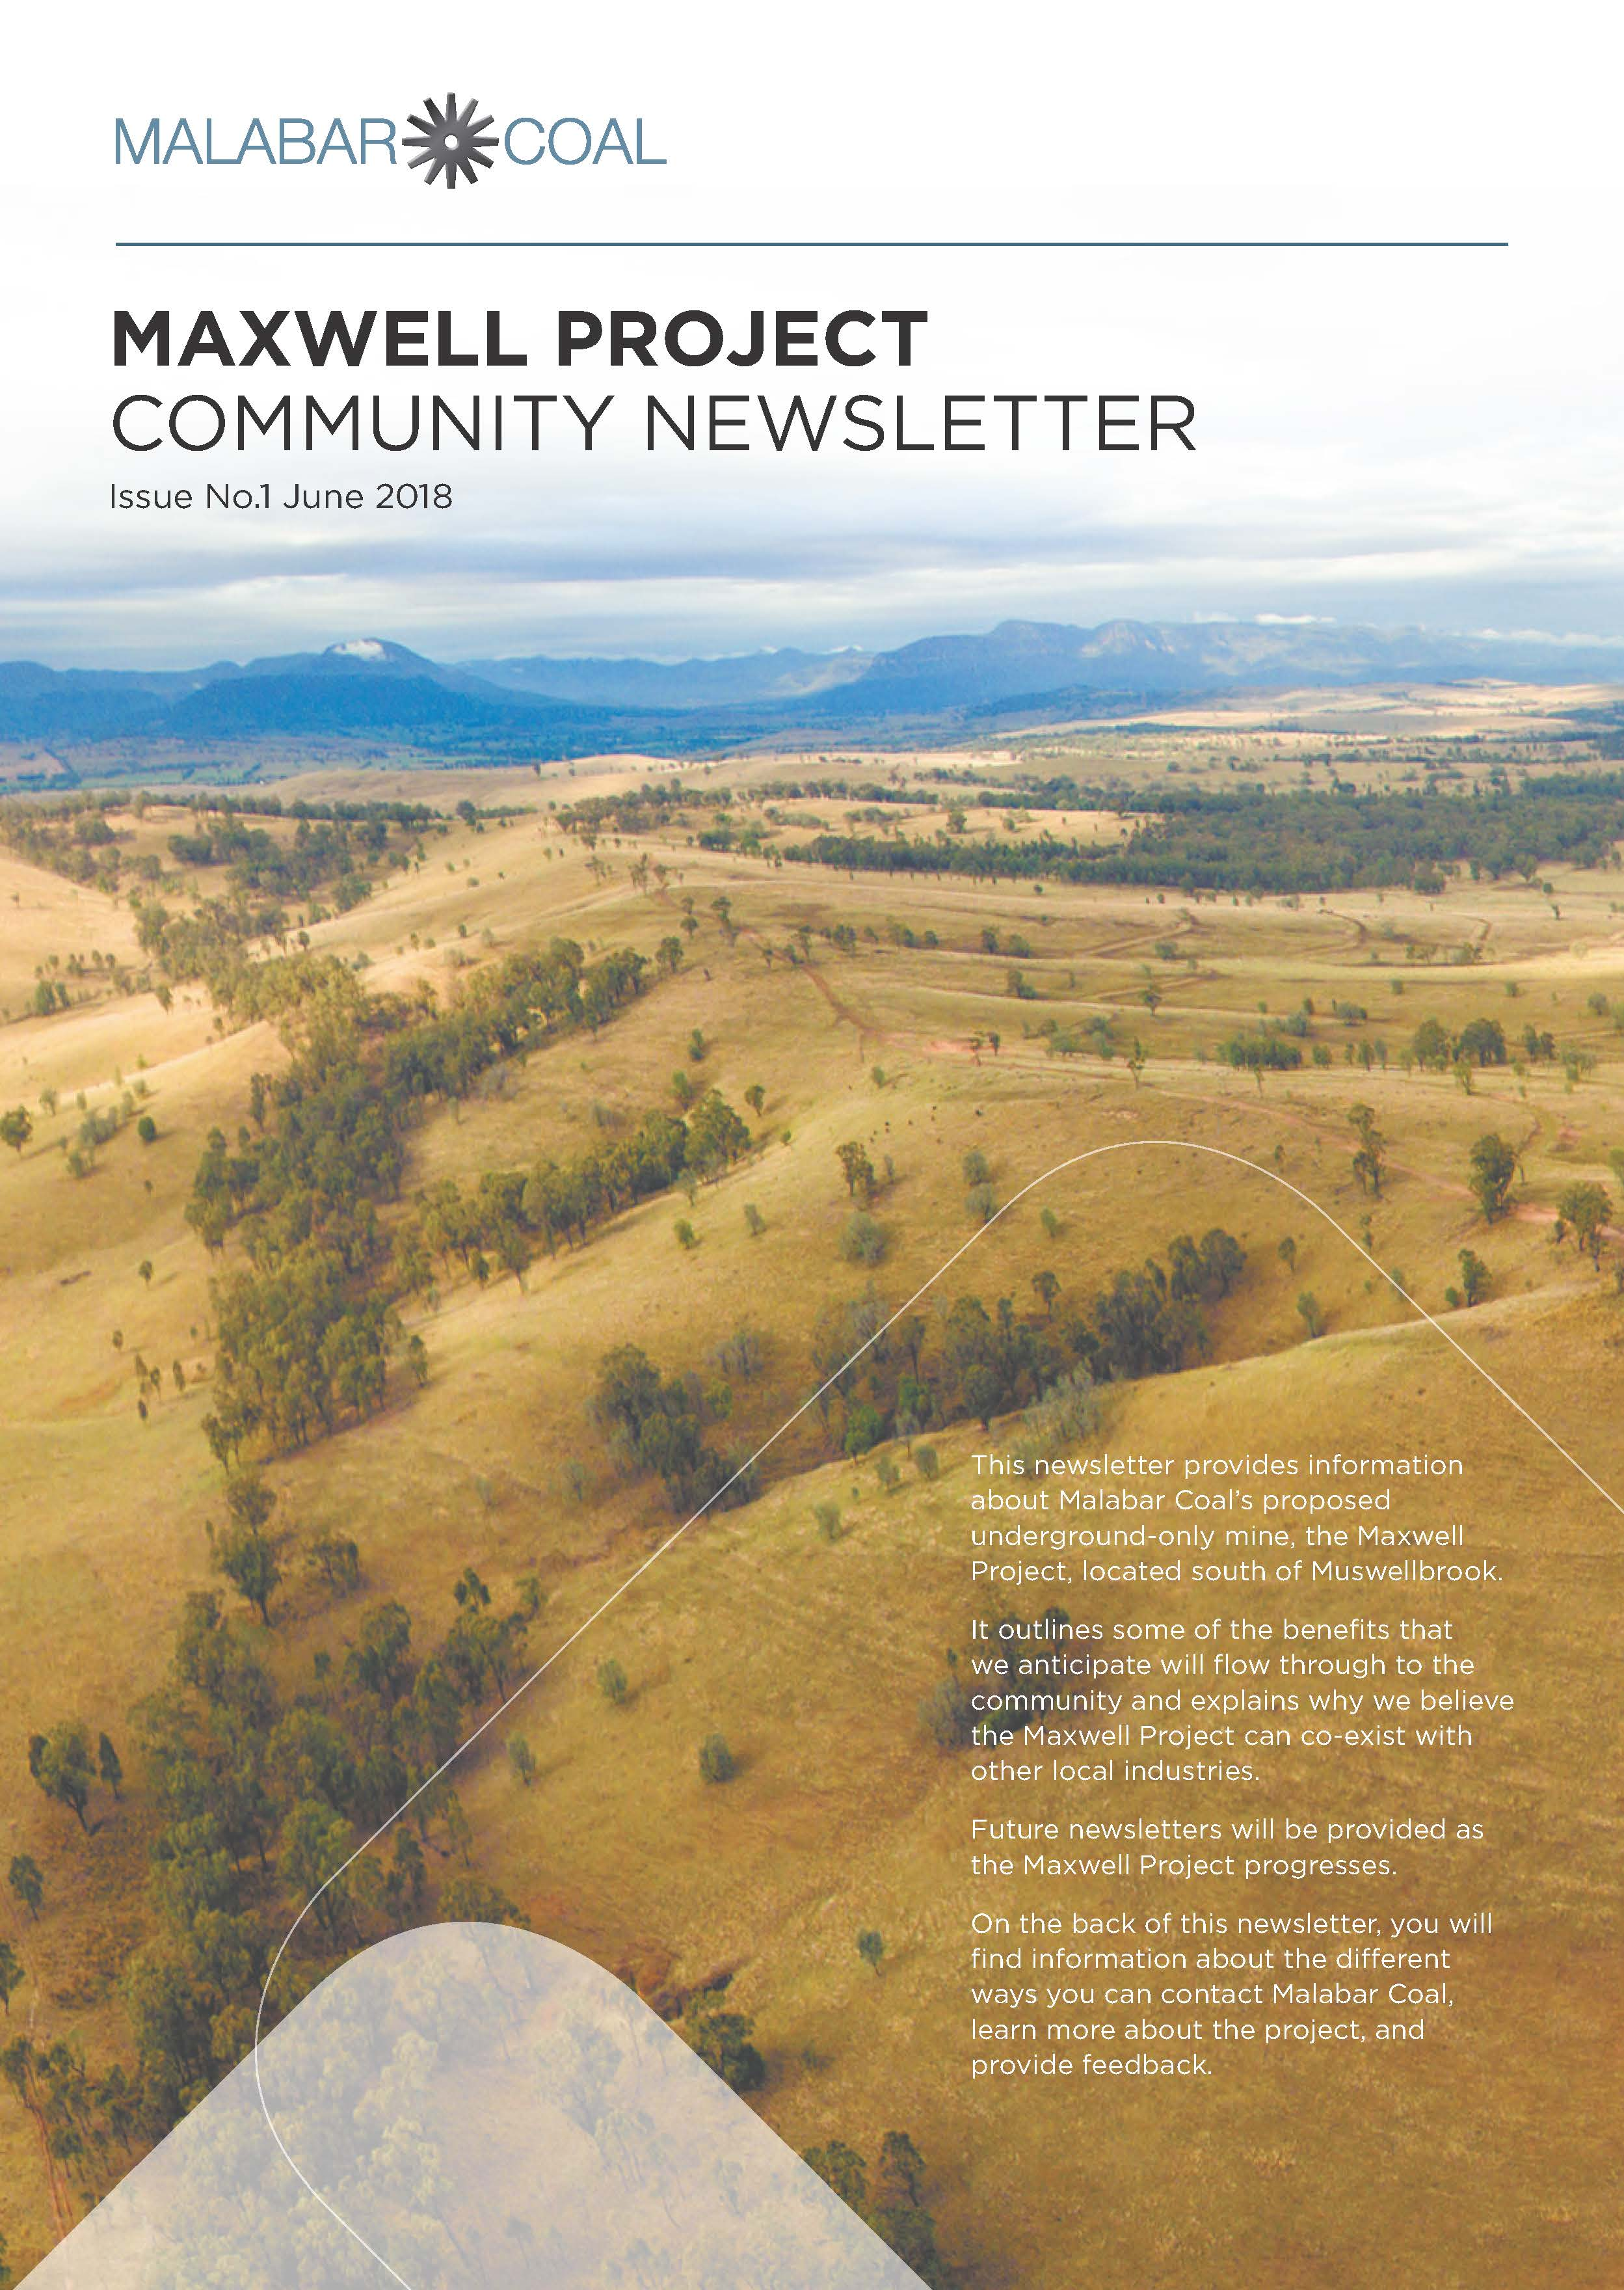 Malabar Coal Community Newsletter Vol. 1 June 2018